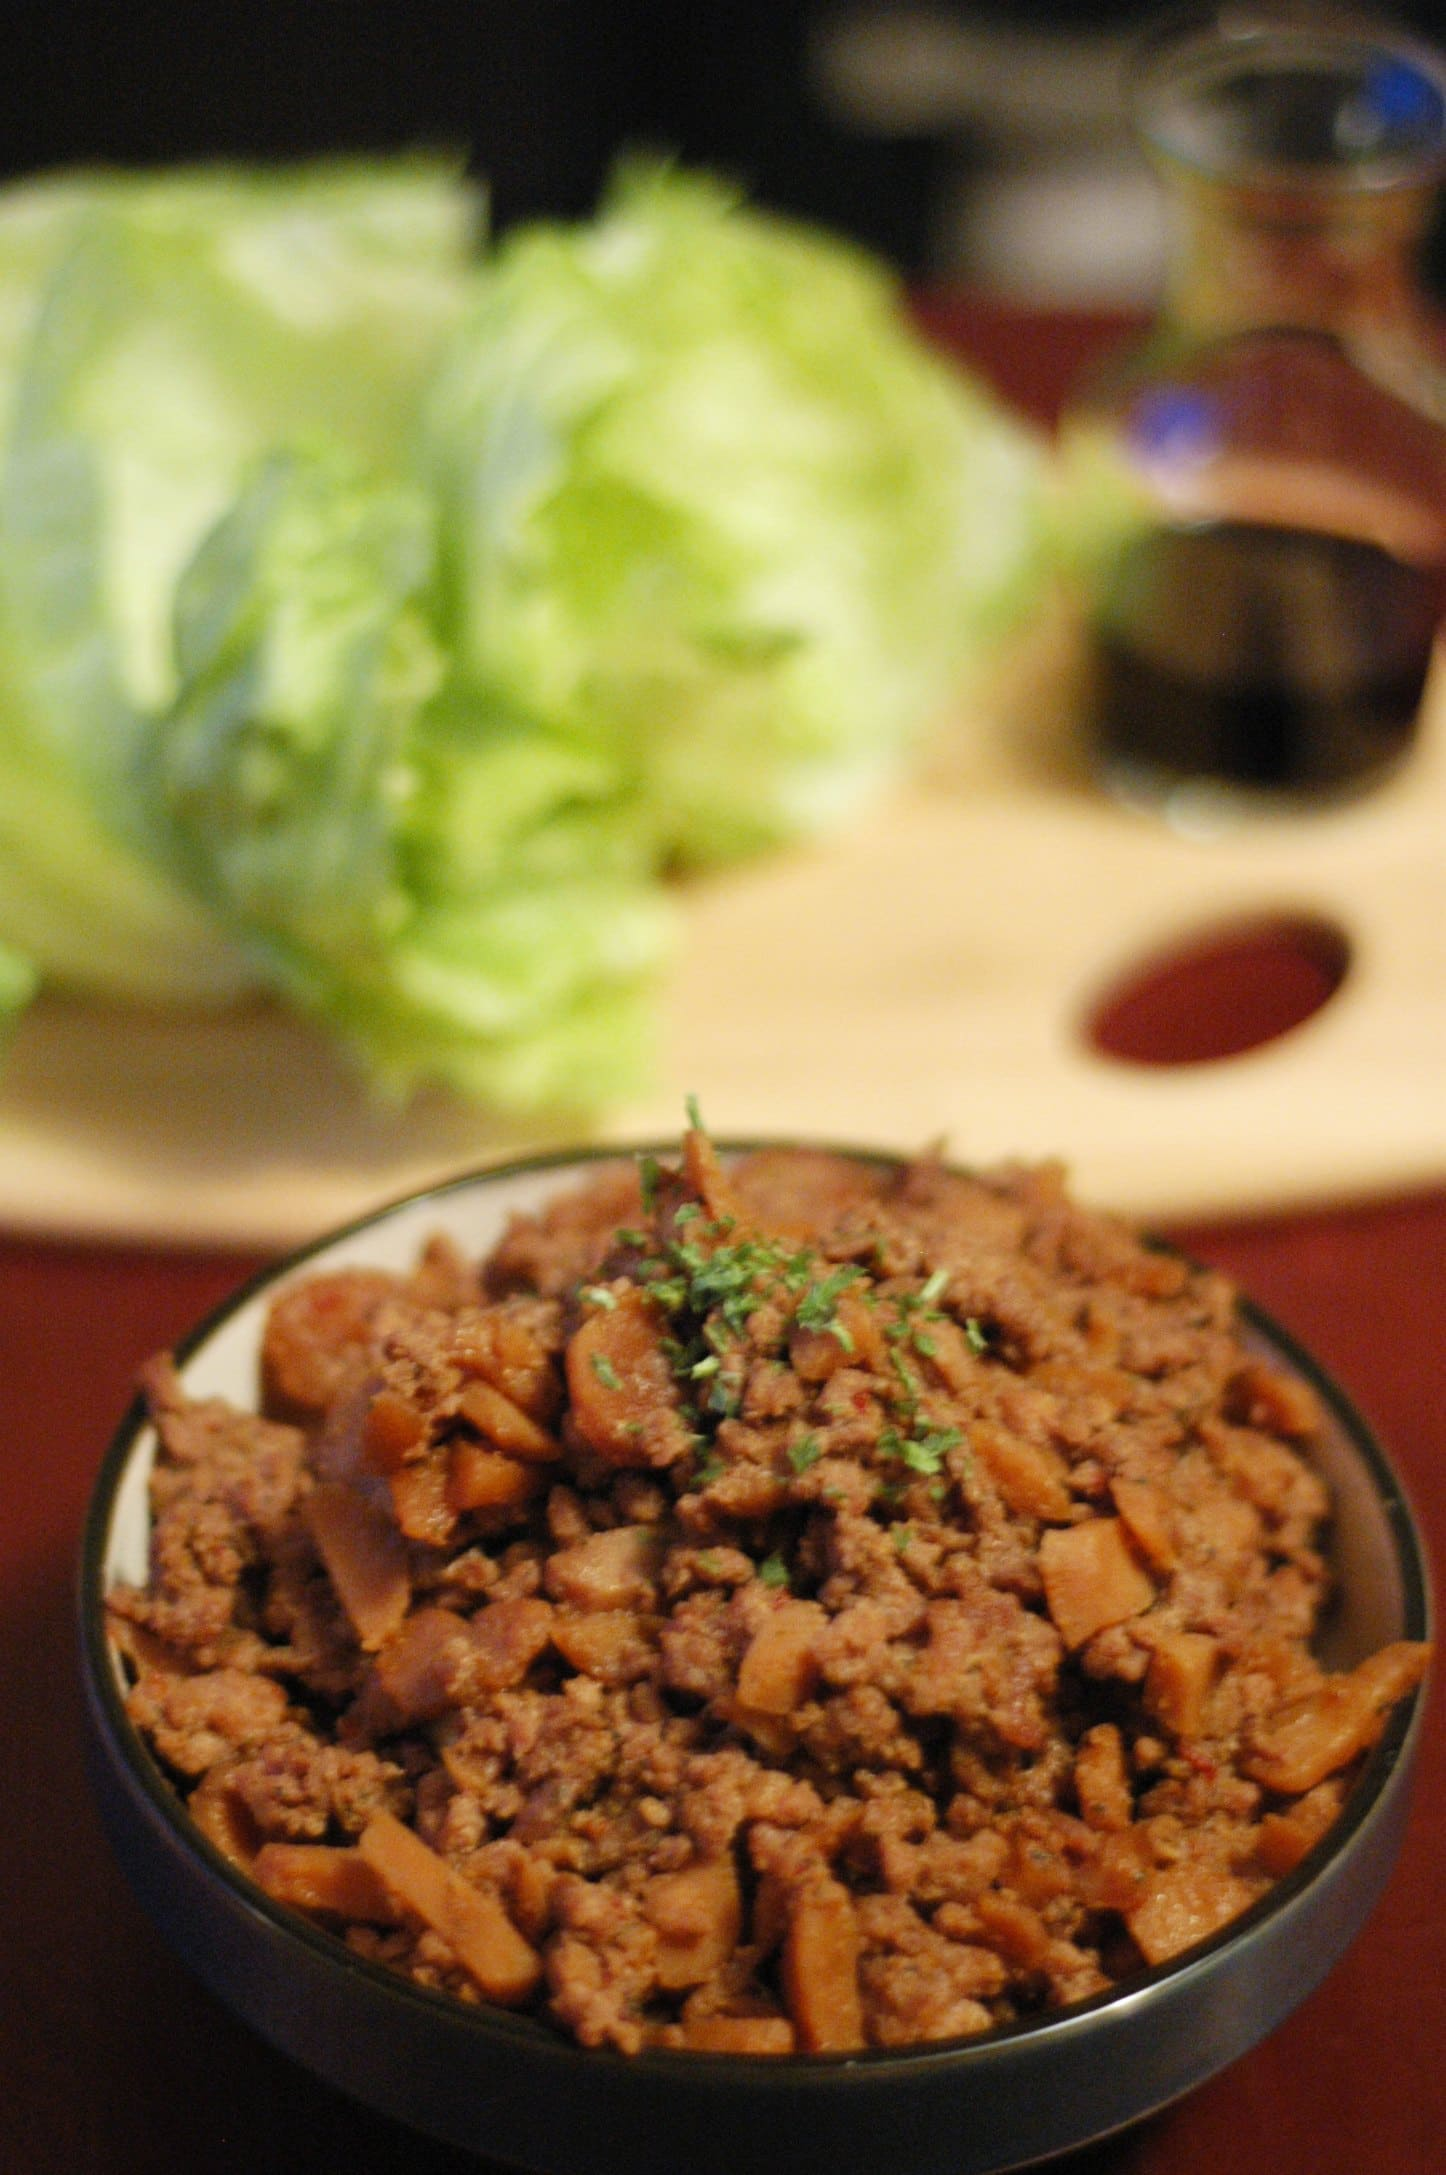 Black bowl with pork mixture with head of lettuce on cutting board in background